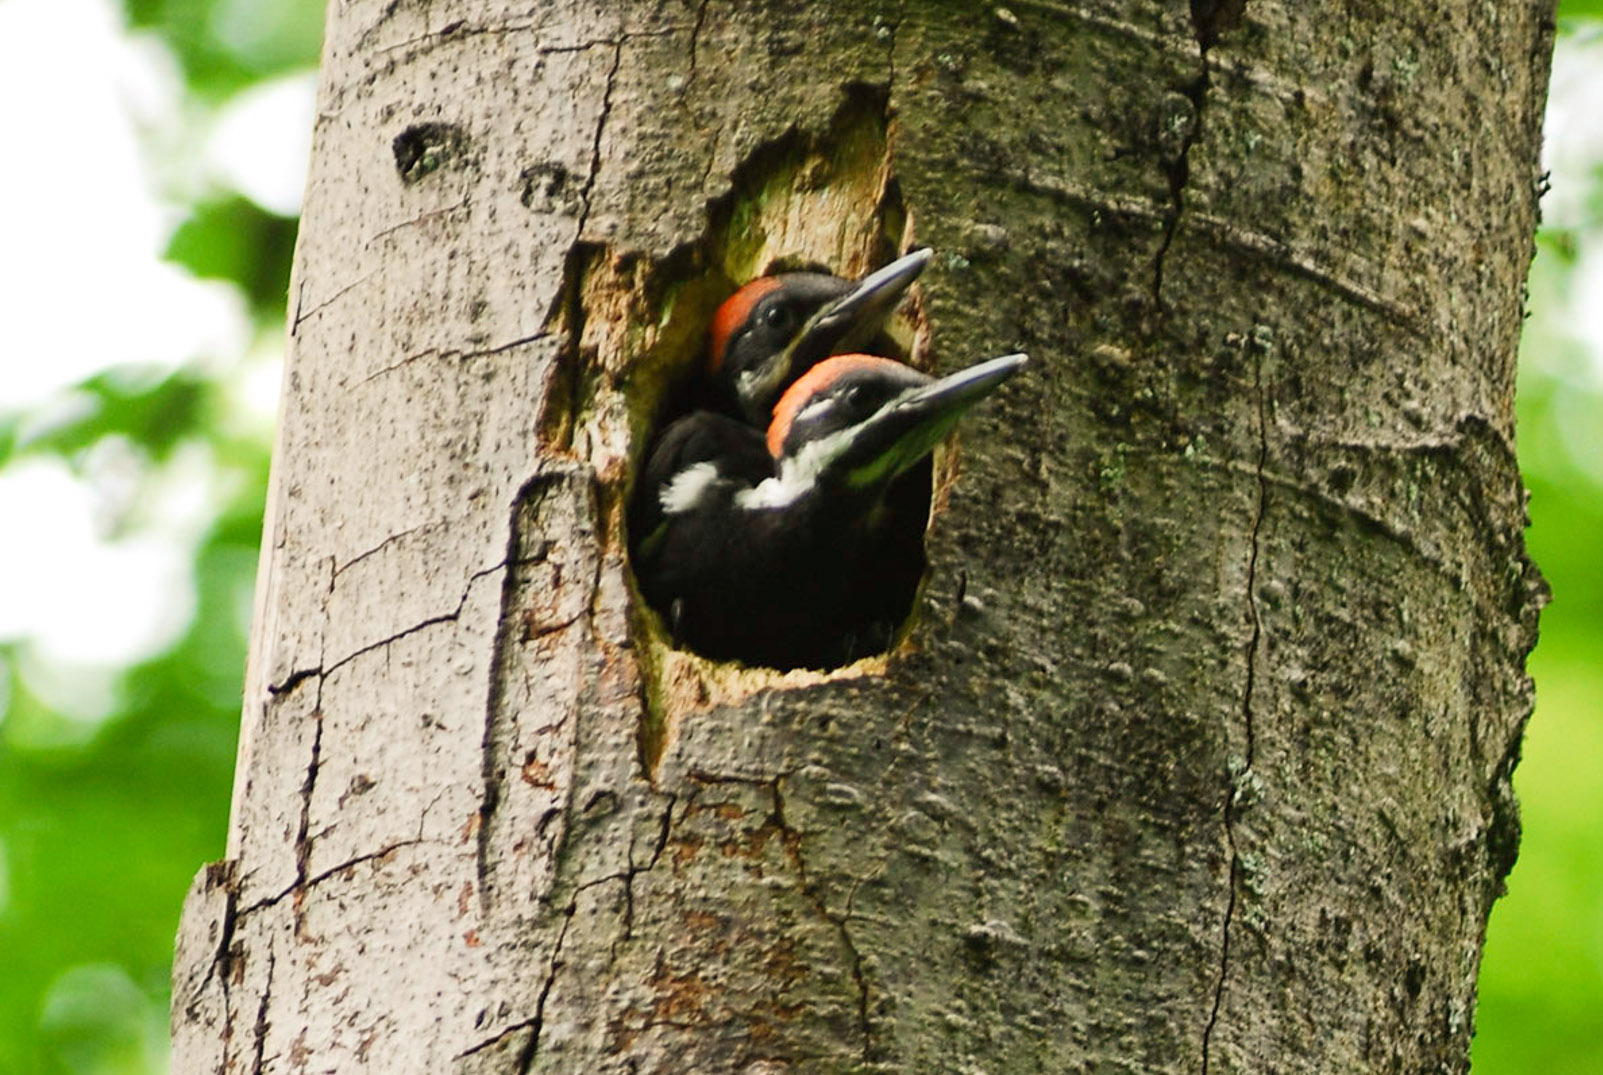 A new study reveals that woodpeckers in Seattle can coexist with developed land as long as the tree cover remains above a certain threshold.